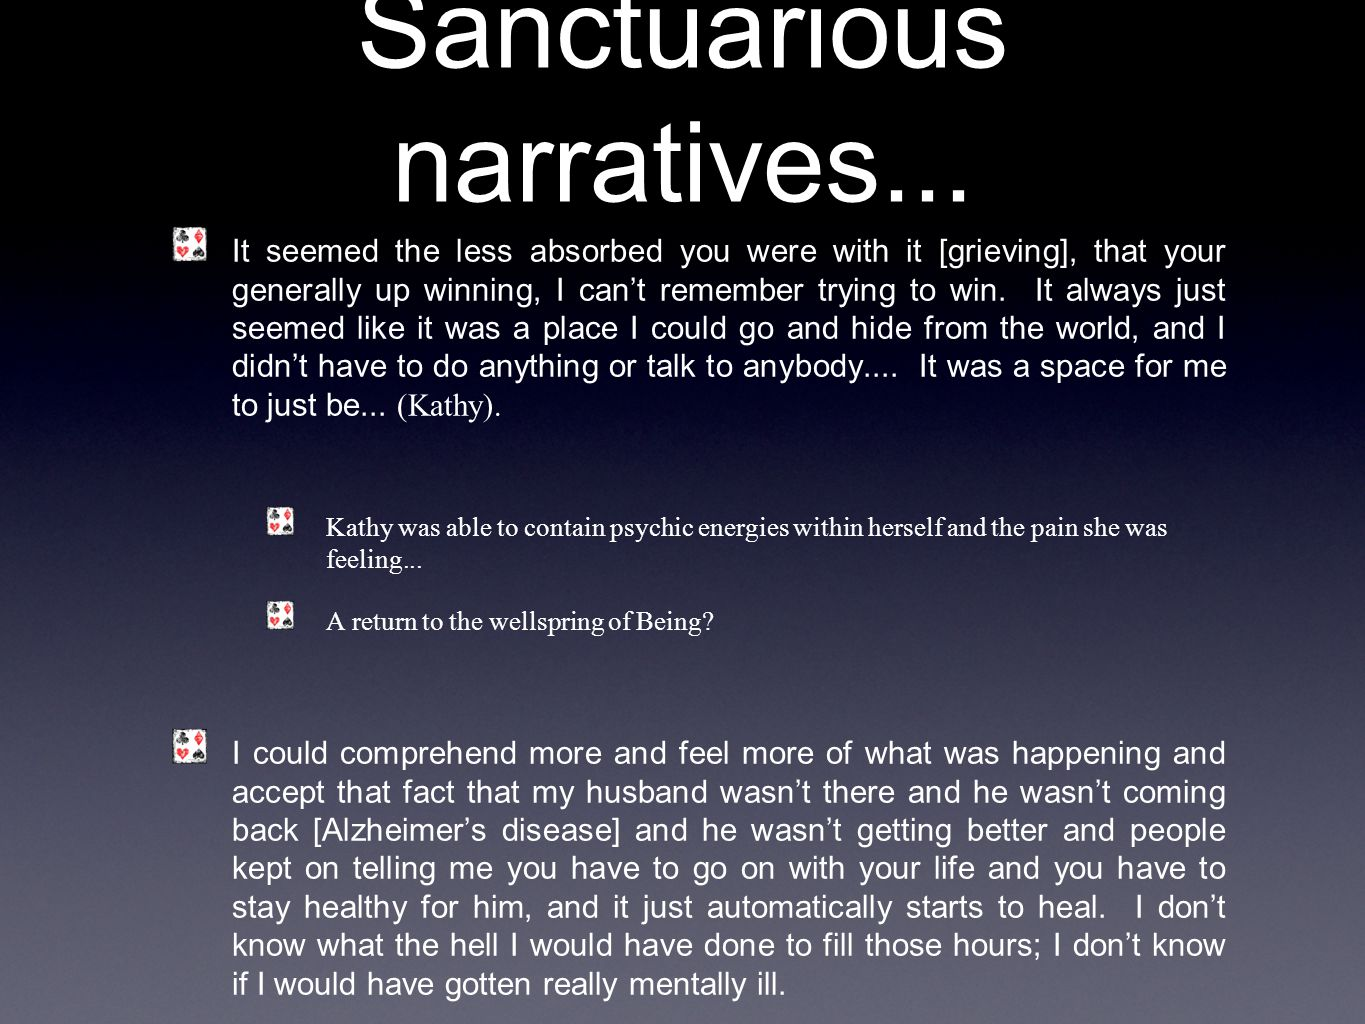 Sanctuarious narratives...